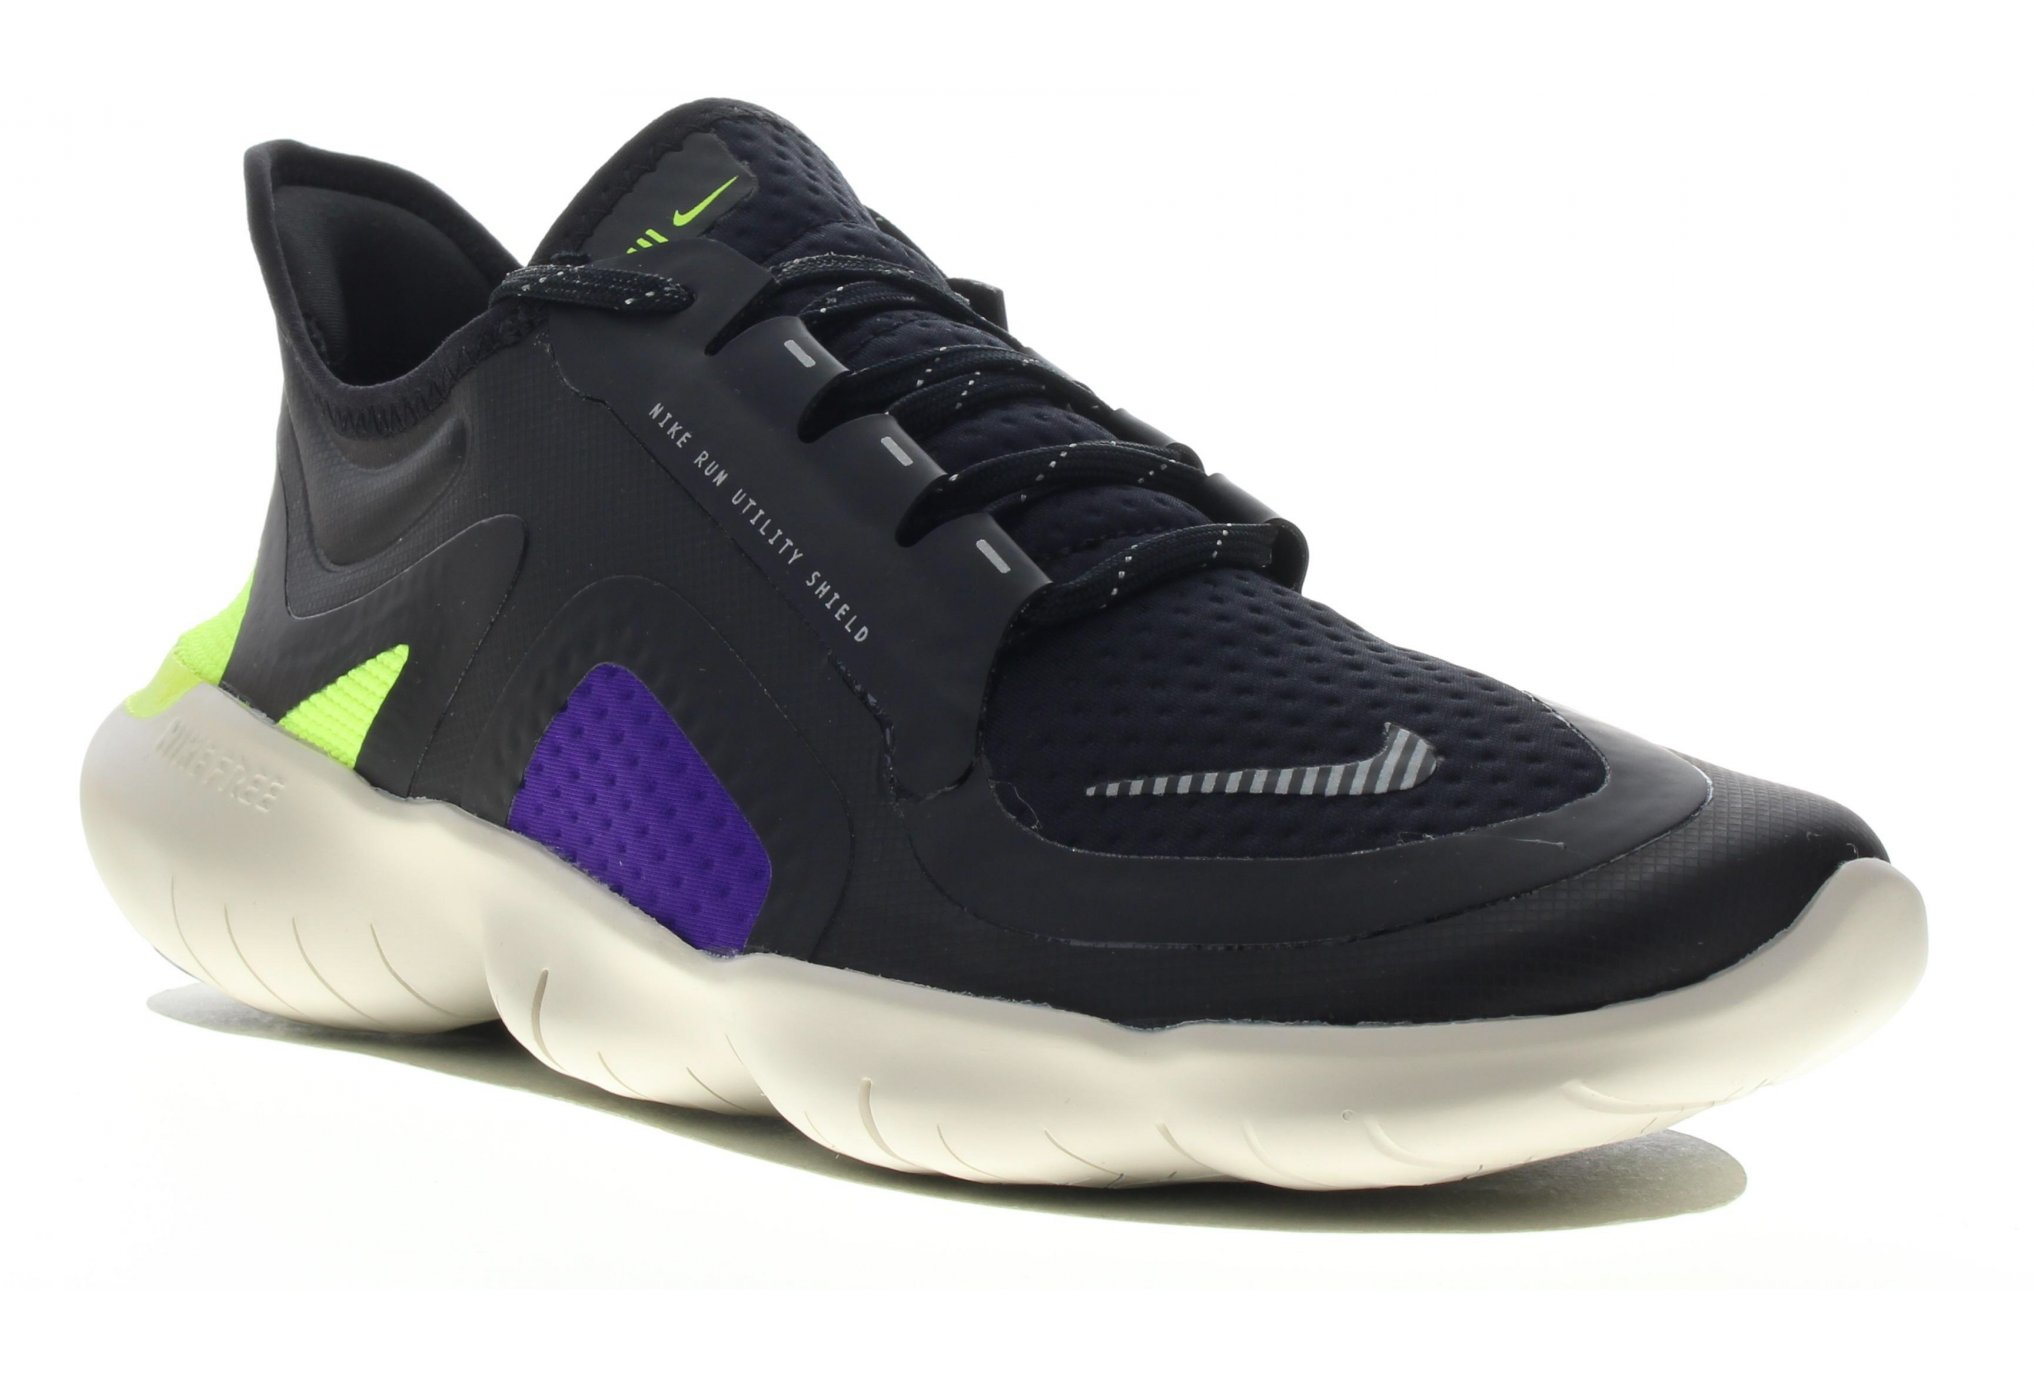 Nike Free RN 5.0 Shield Chaussures running femme